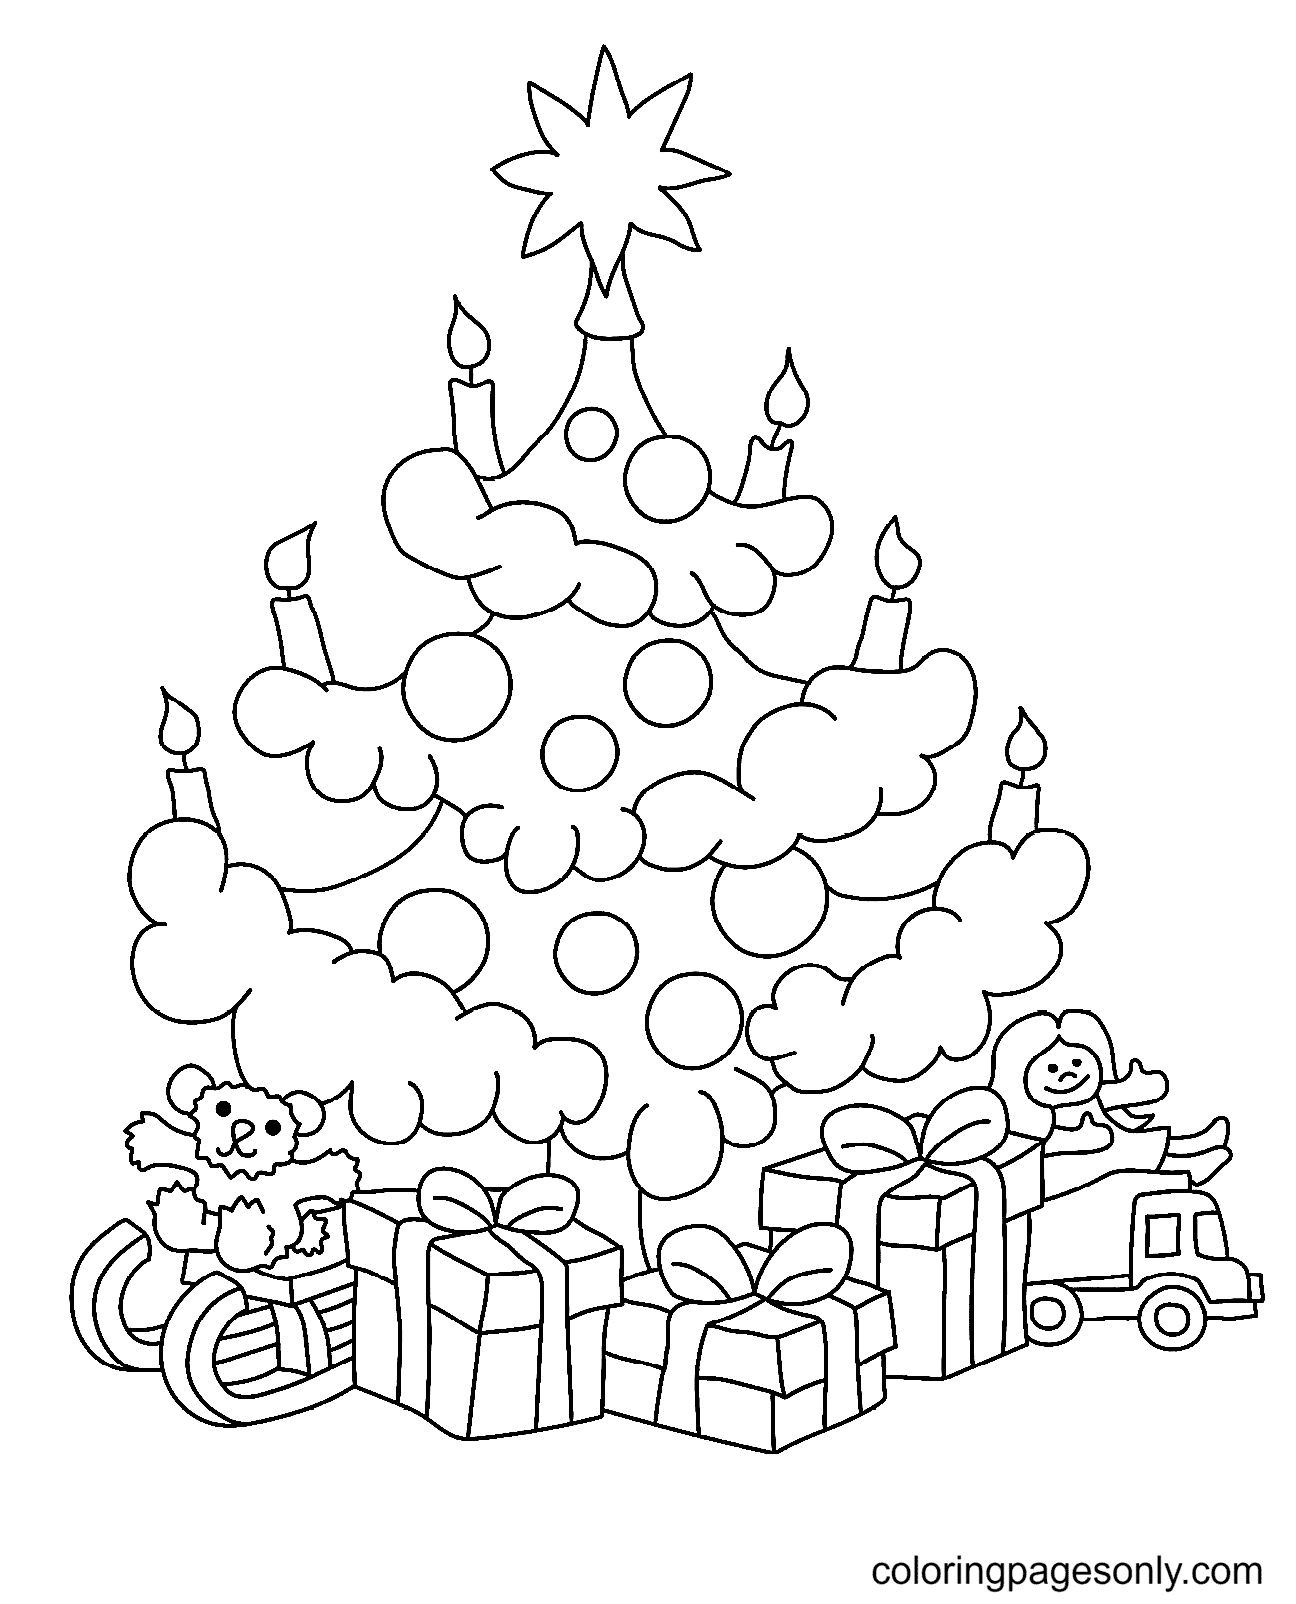 Cute Christmas Tree with Gifts Coloring Page